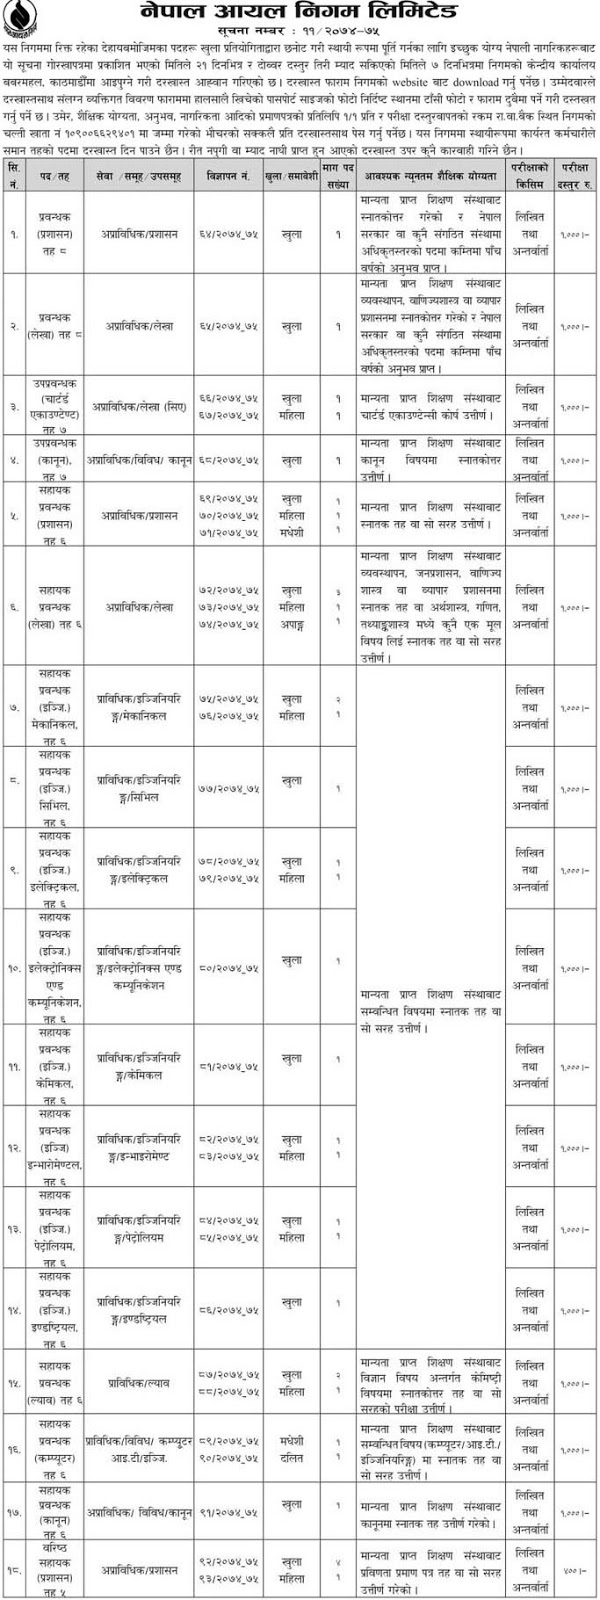 Job Vacancy in Nepal Oil Corporation, Nepal Government Job